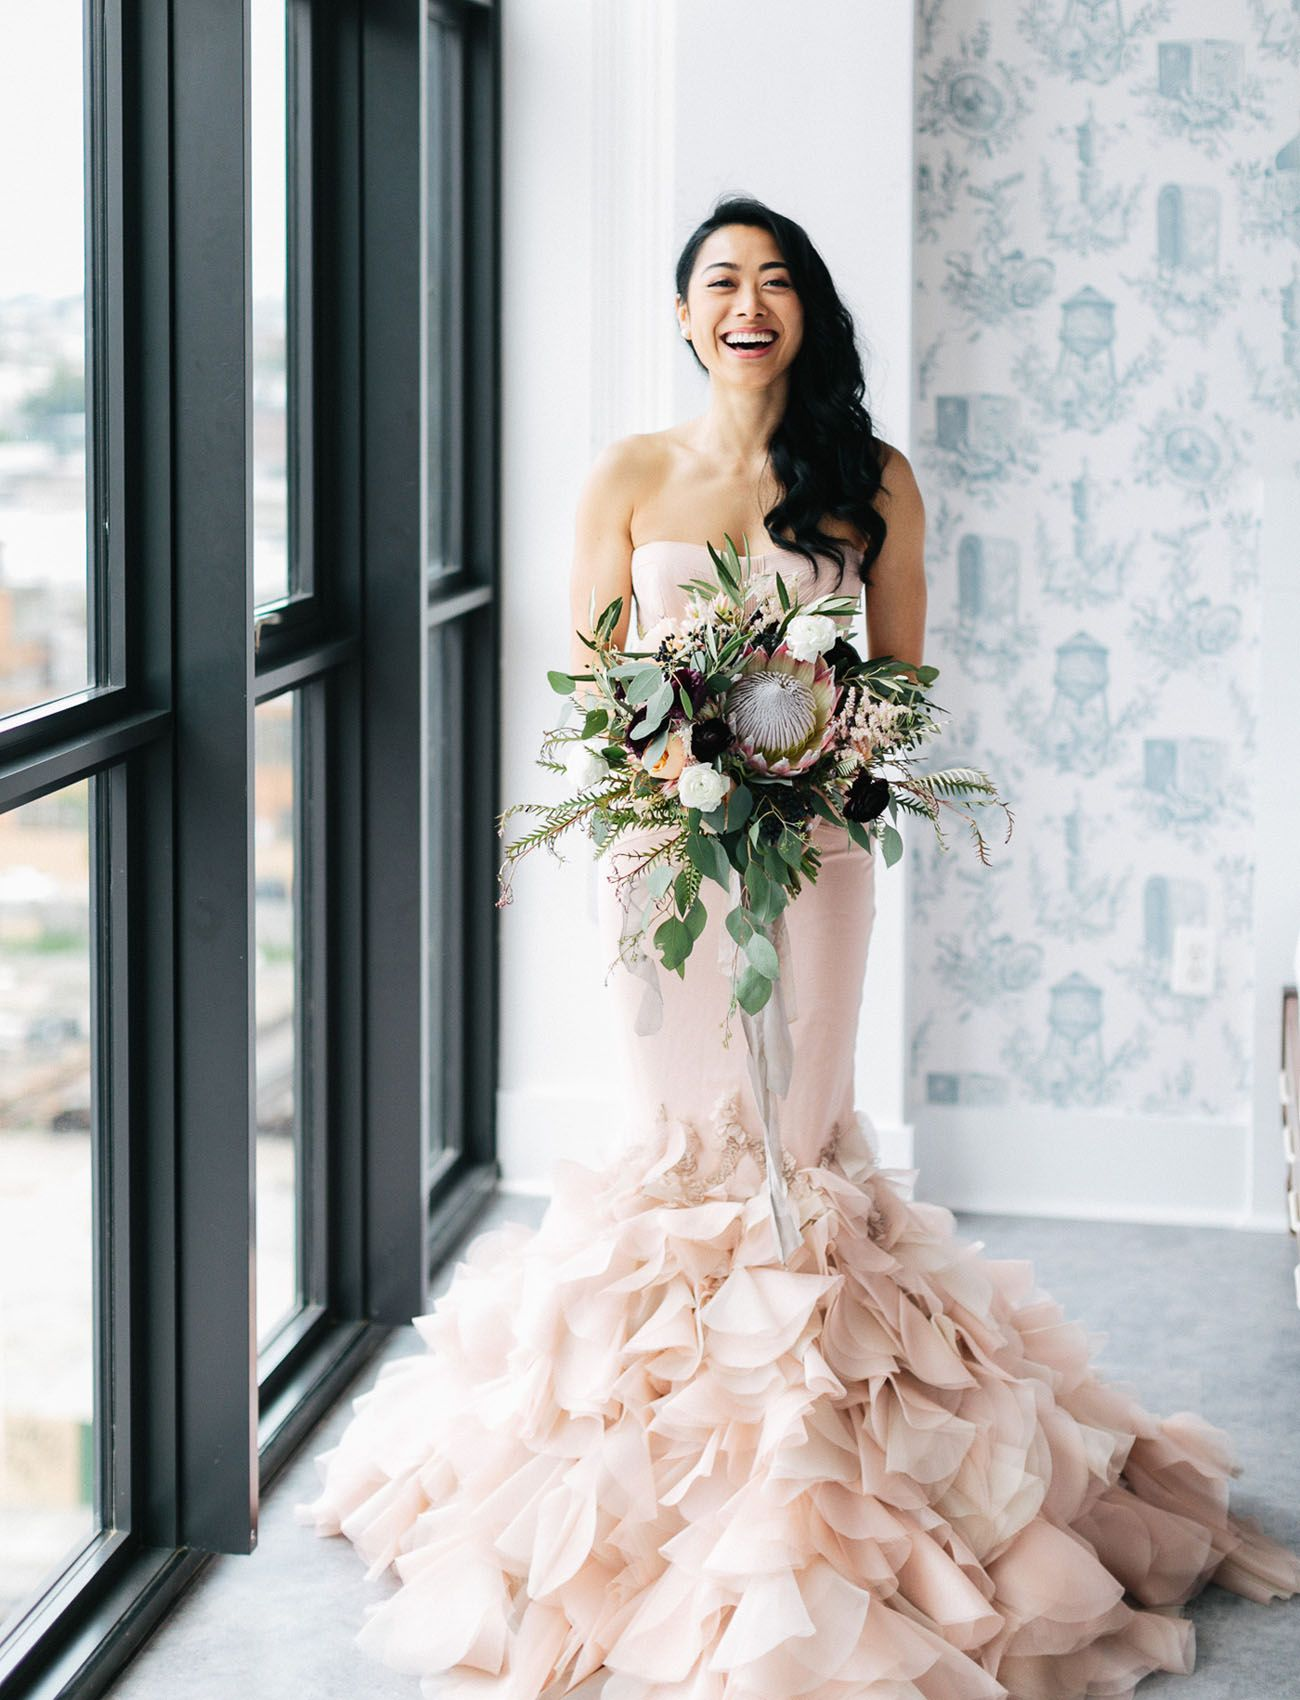 98ebfa4f6612 The Bride Wore a Stunning Blush Dress at this Industrial Modern Wedding